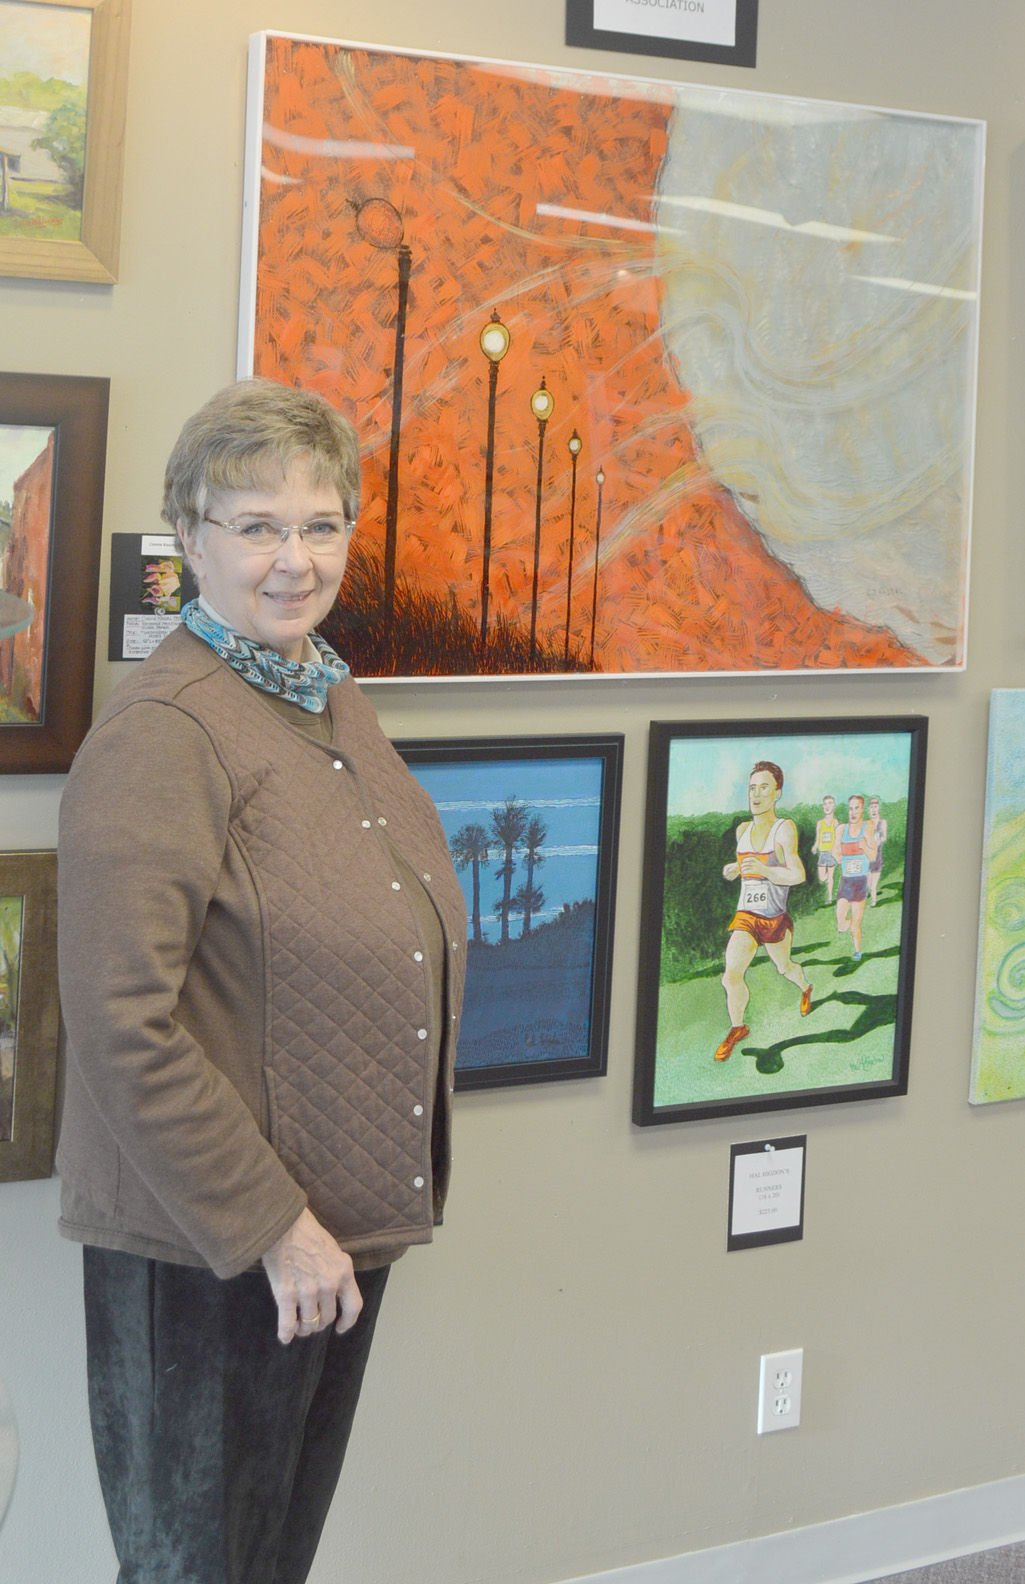 Association to exhibit work at The Framing Station for First Friday ...